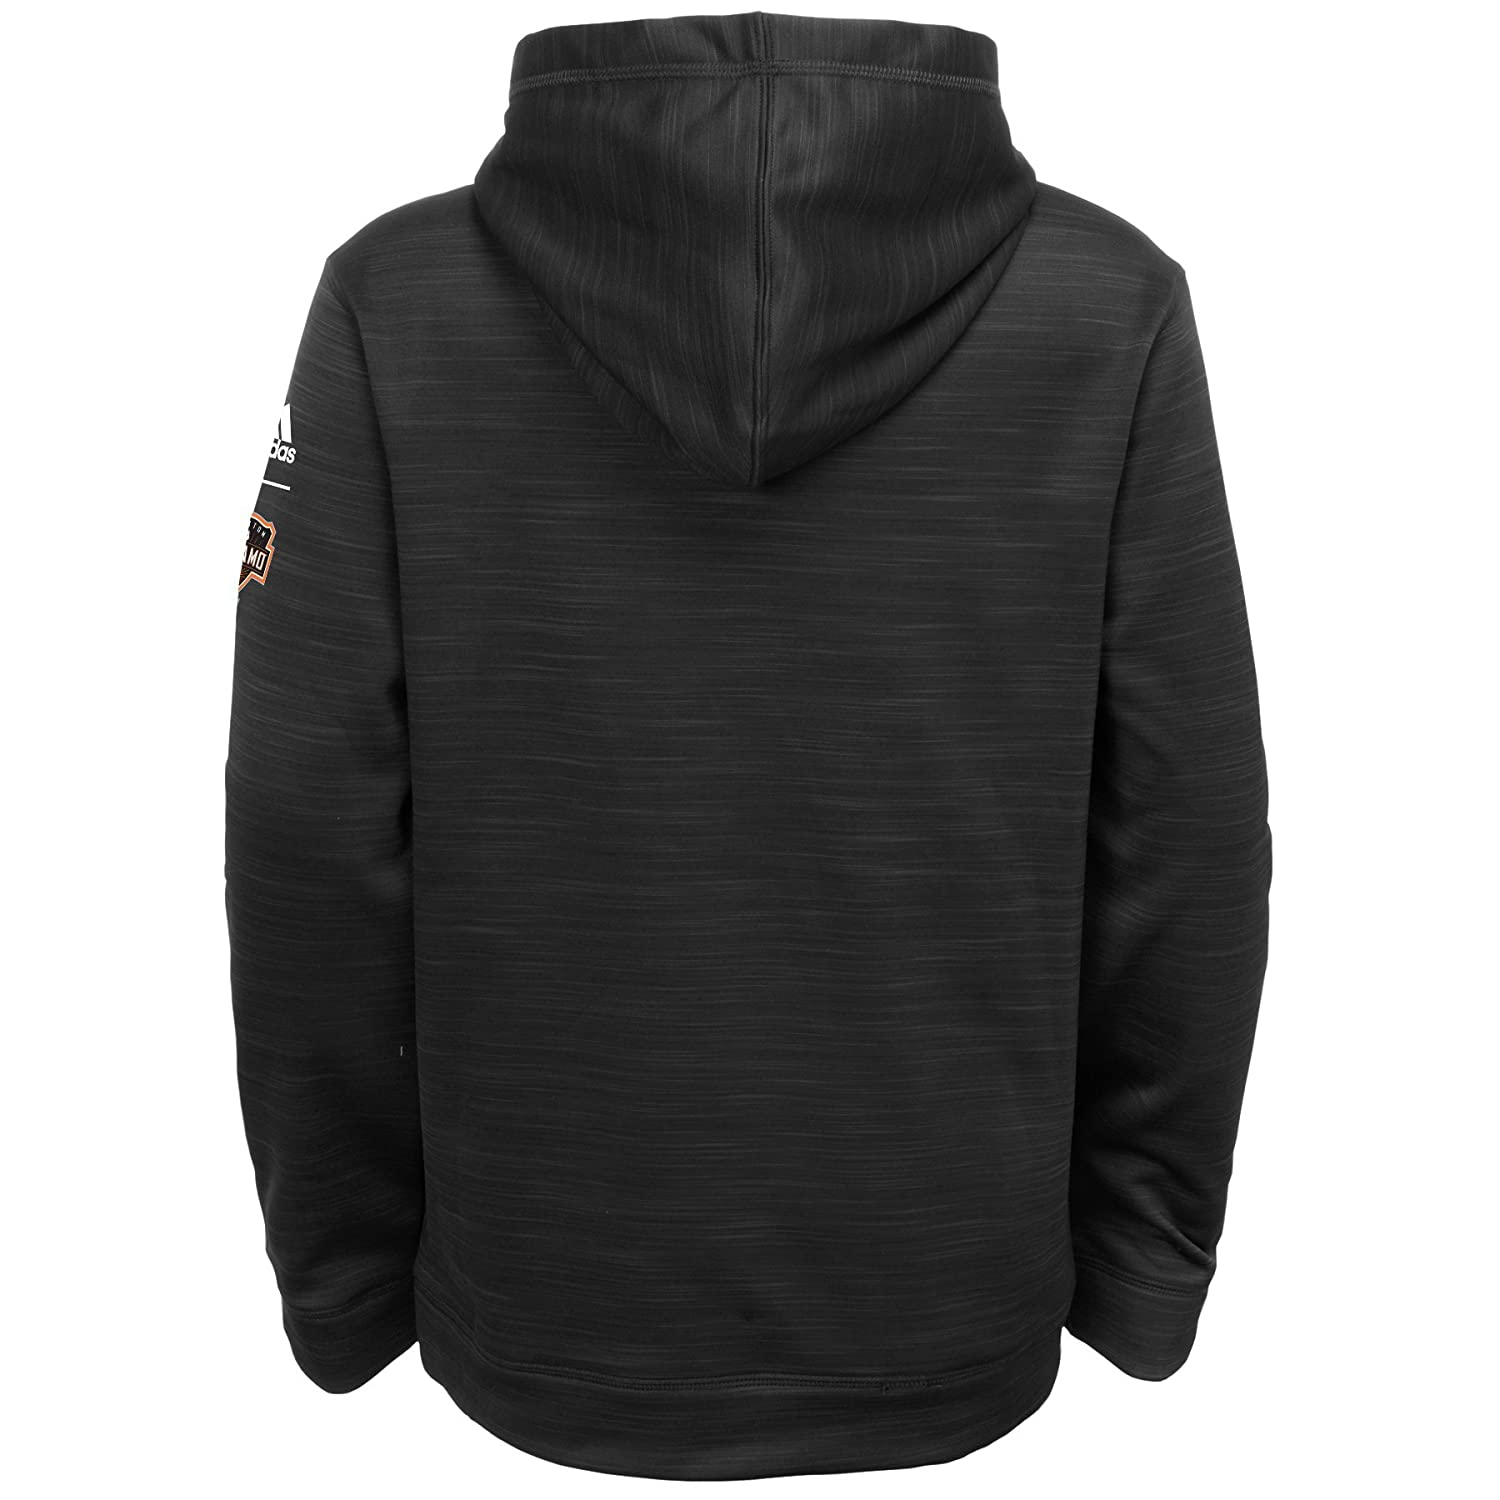 Youth Boys Medium MLS by Outerstuff Tactical Block Ultimate Hood 10-12 Heathered Black